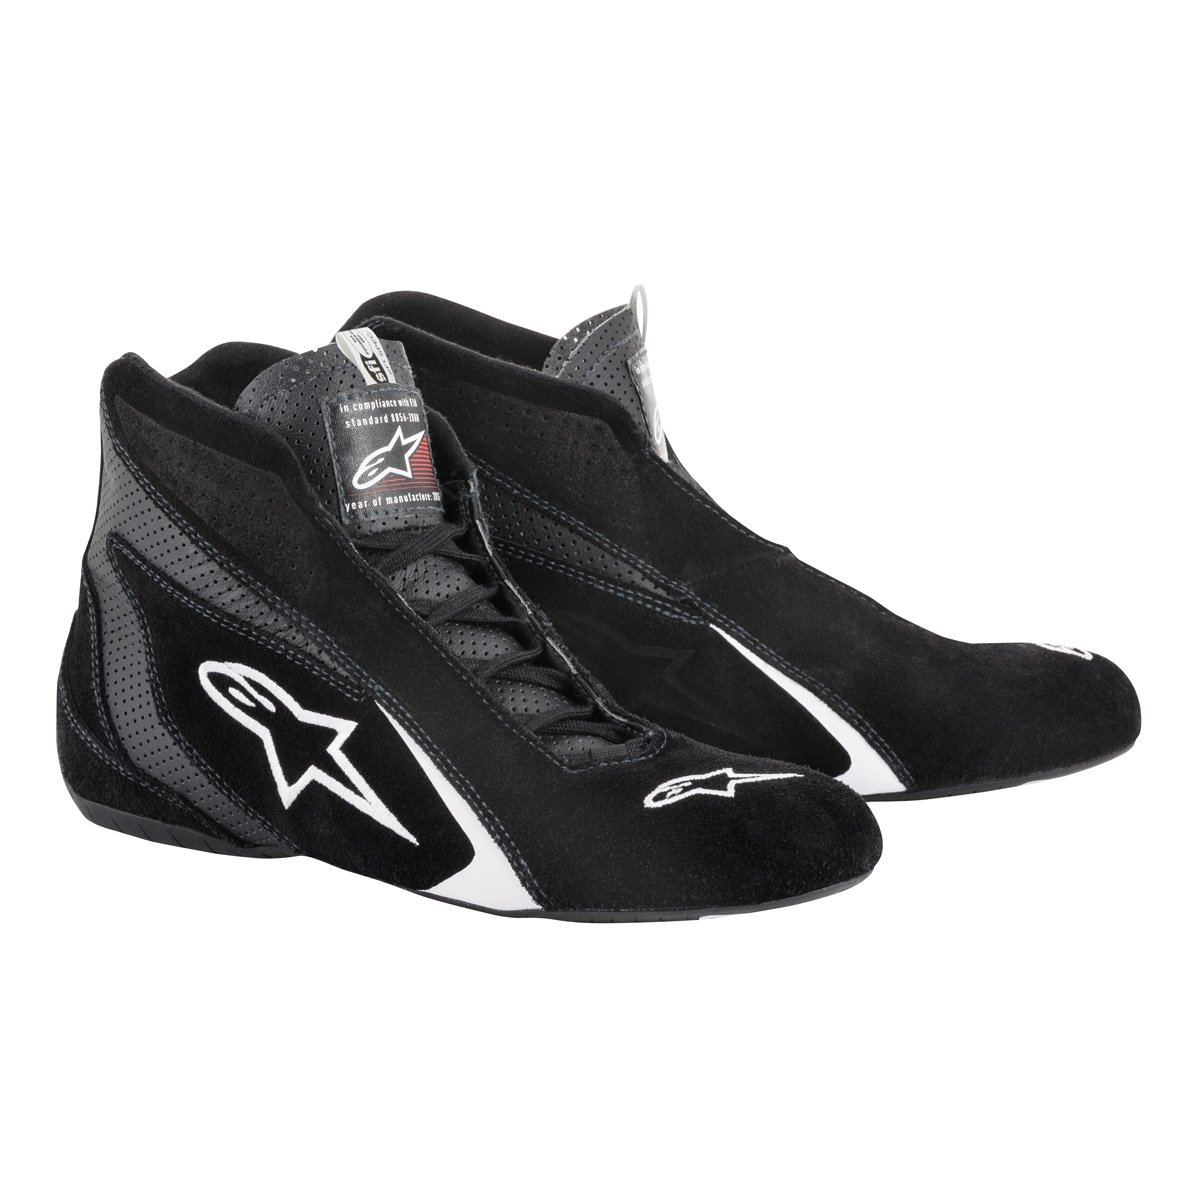 Alpinestars Mens Race Driving Shoes and Boot (Black, Size 8.5), 1 Pack by Alpinestars